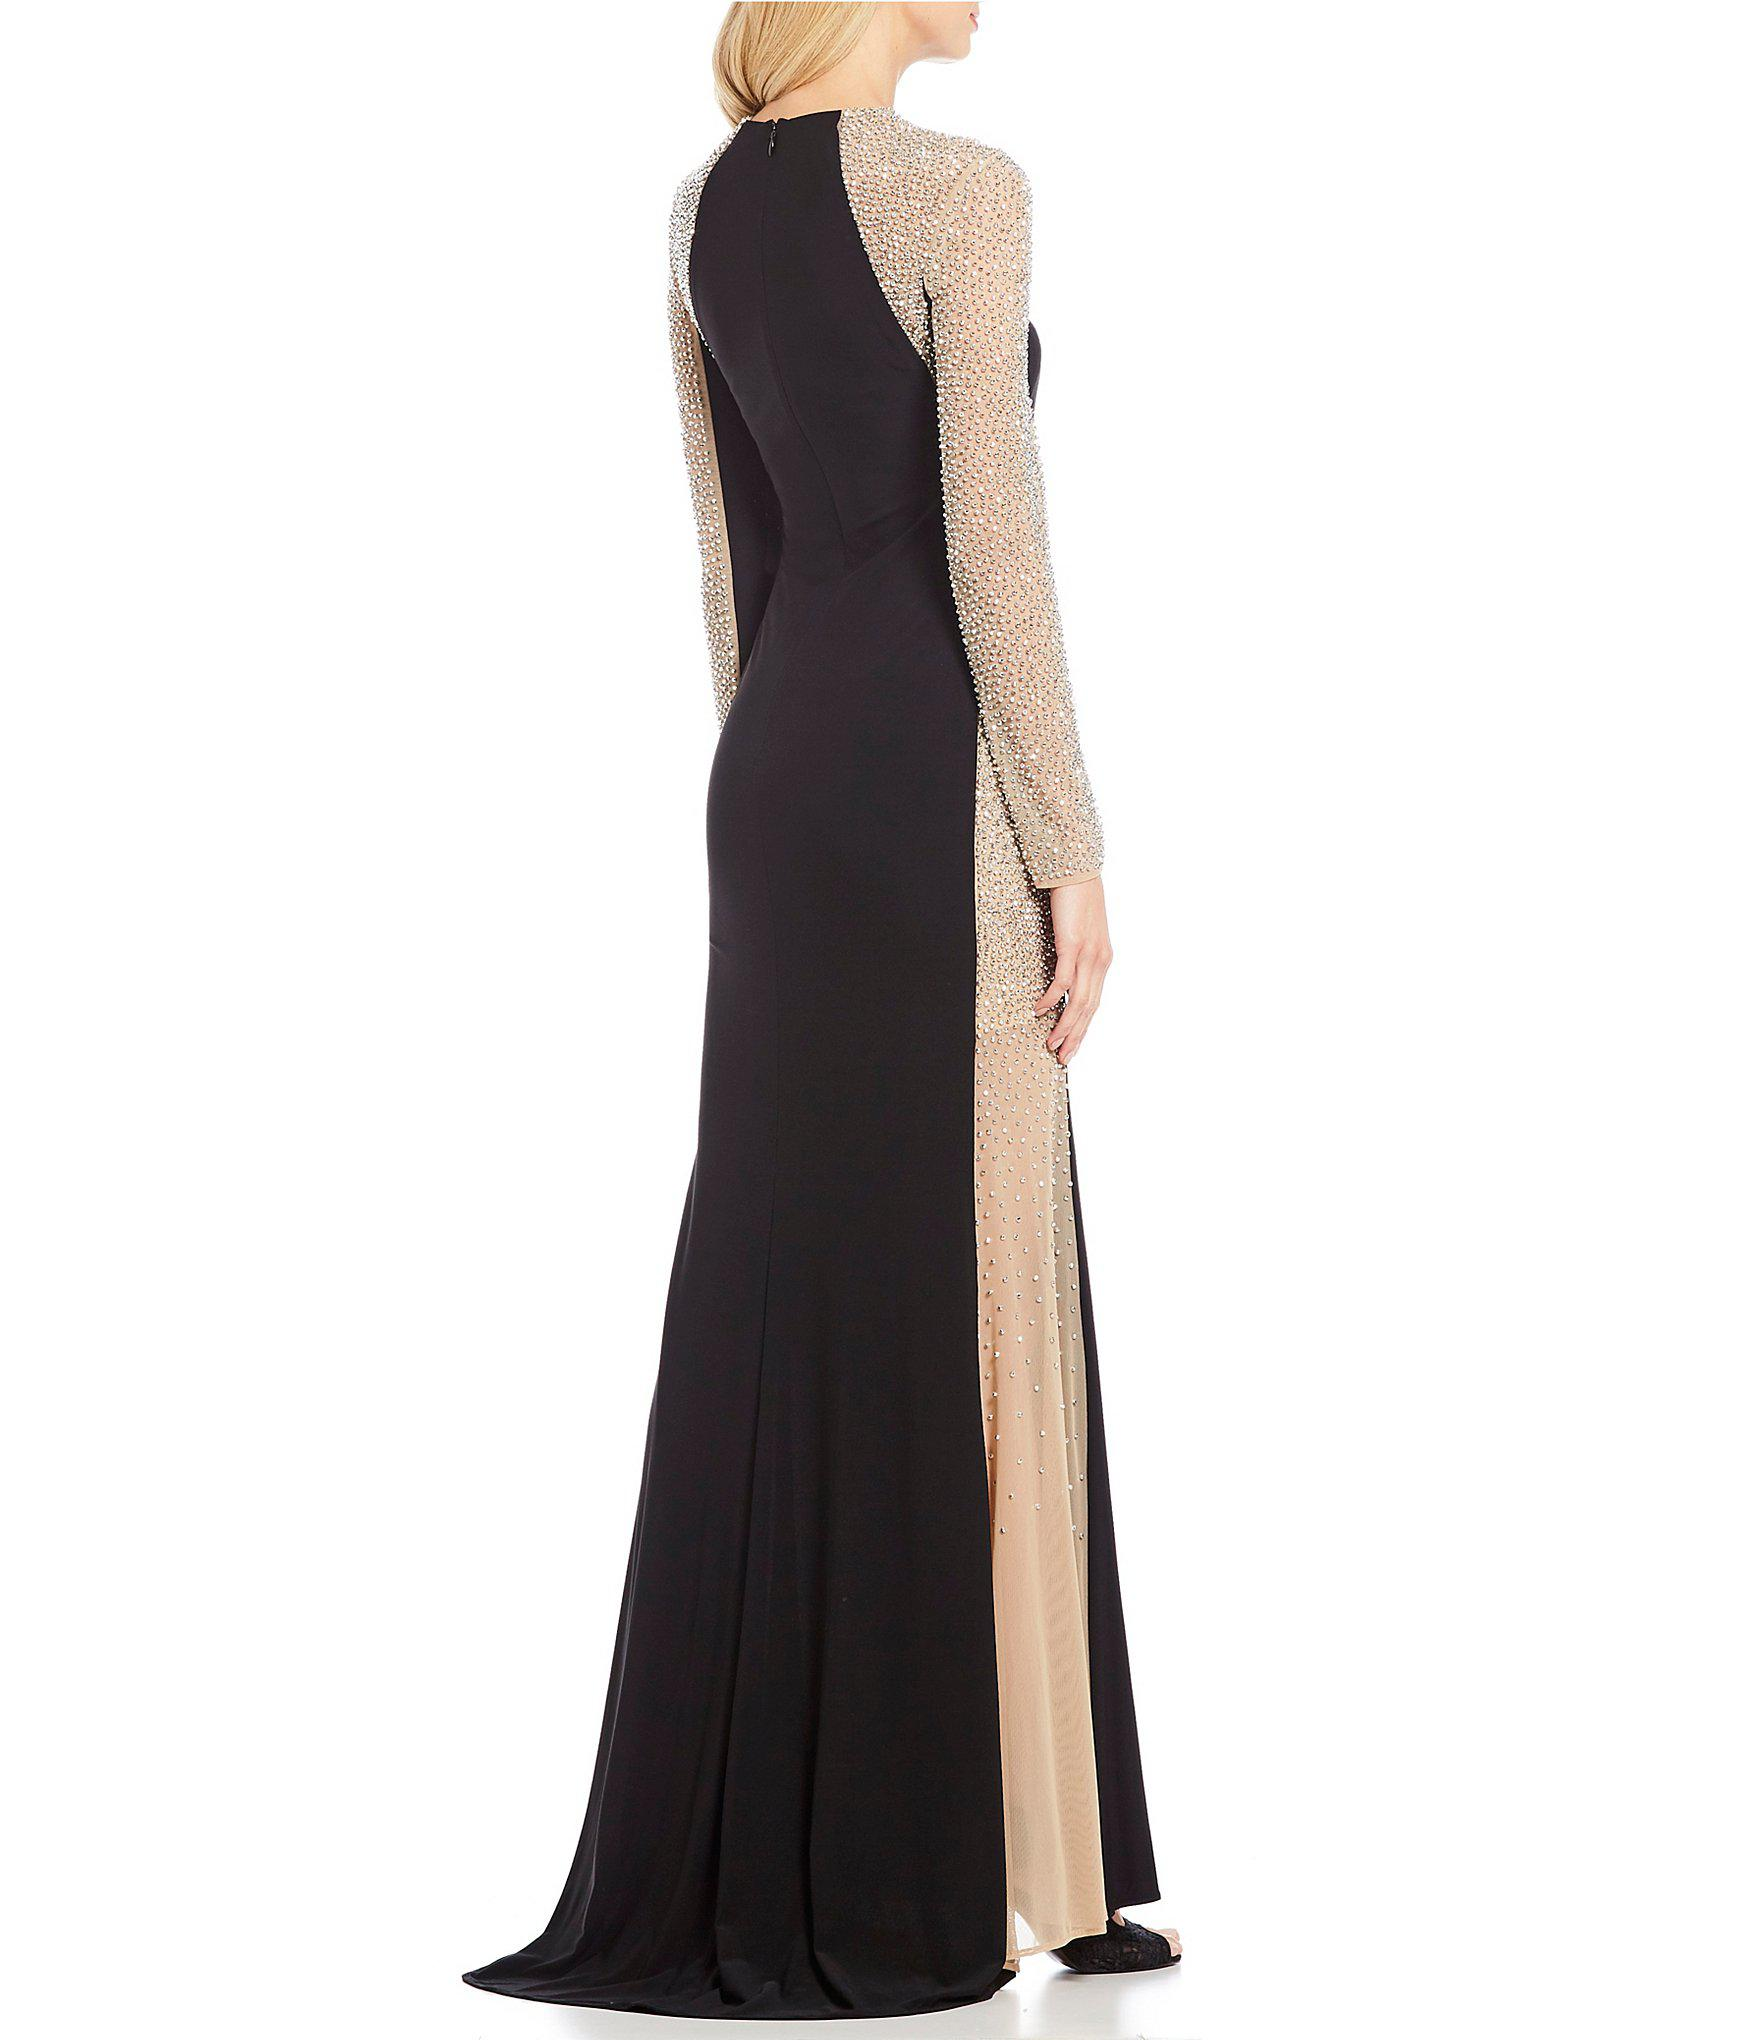 a7066f8bf6ce9 Xscape Trendy Plus Size Beaded Illusion Gown in Black - Save 26% - Lyst